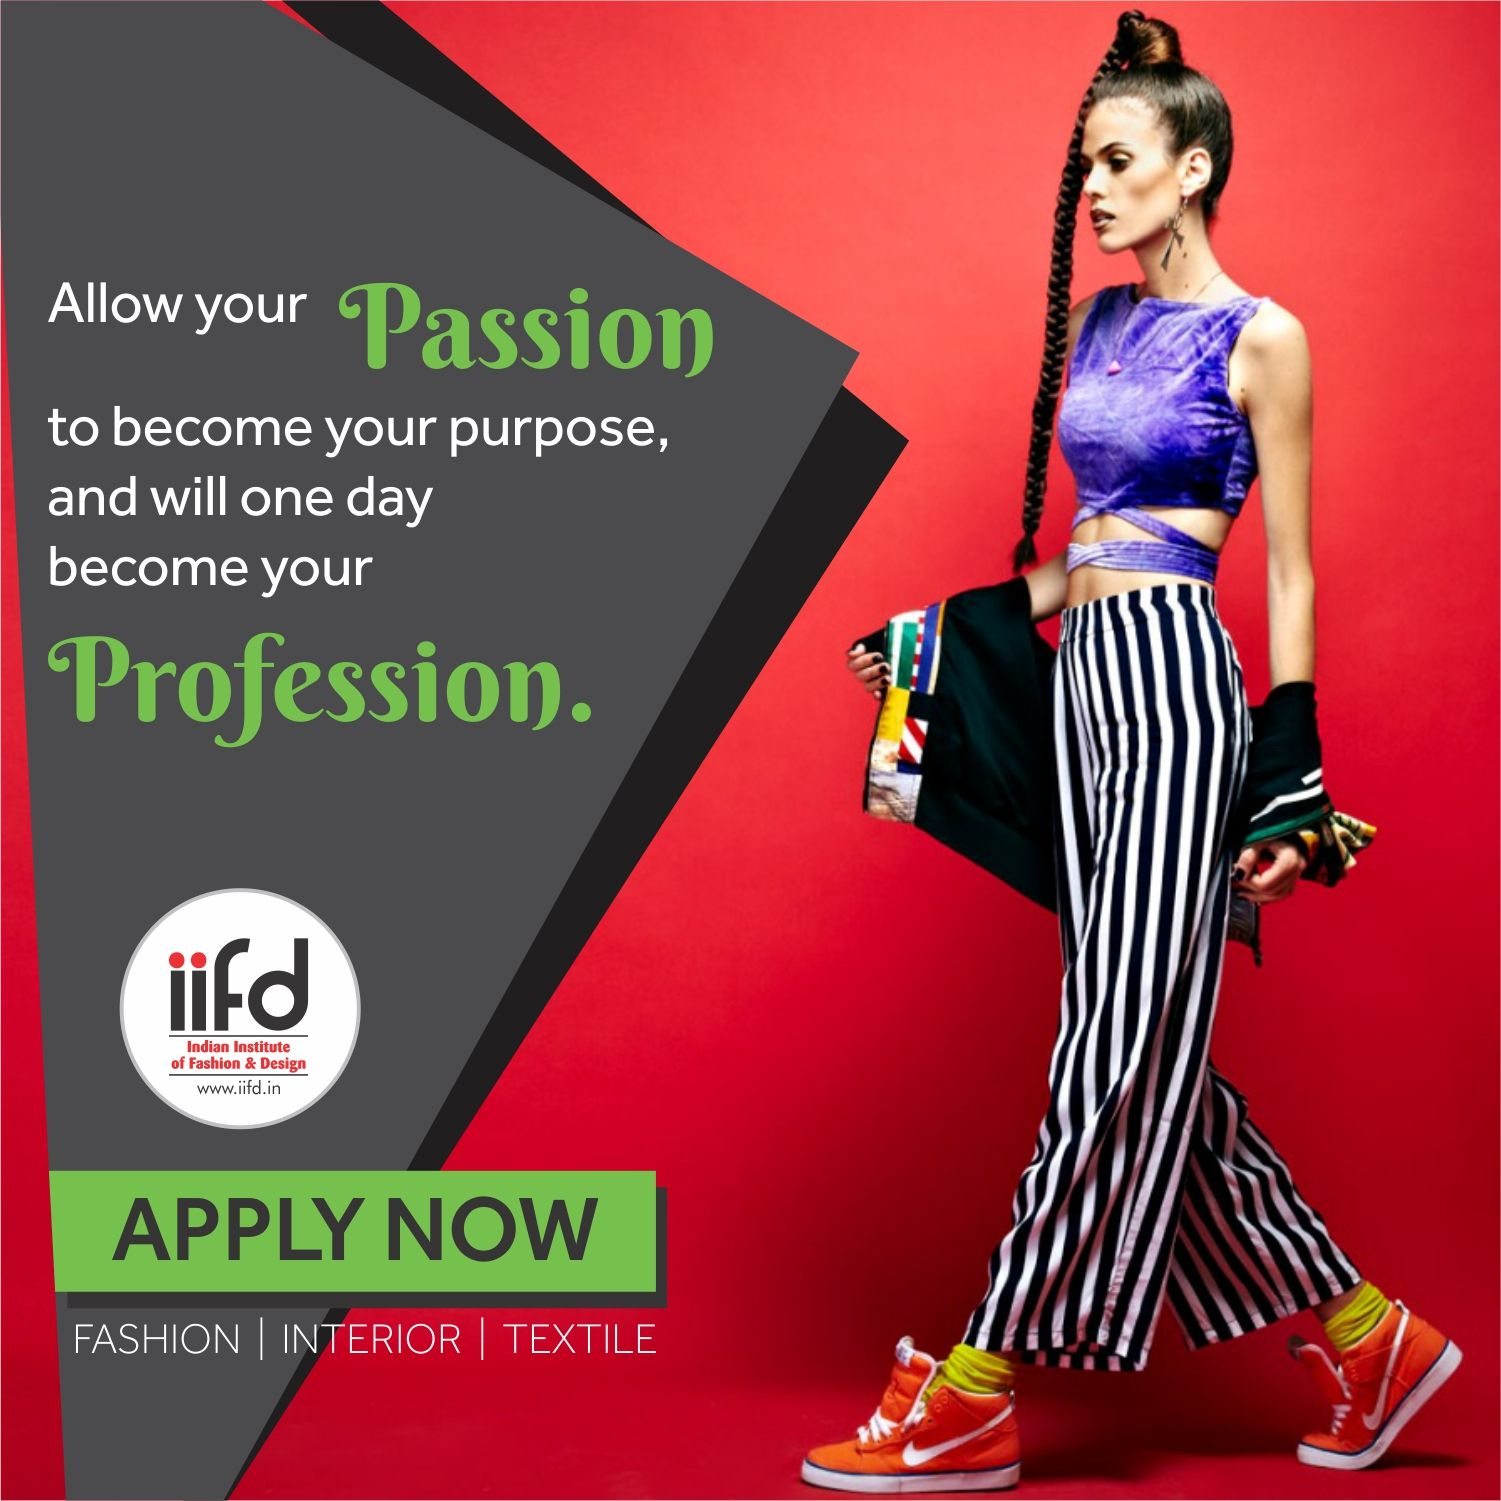 Let your passion to become your Profession. Join Indian Institute of Fashion & Design. For Admission, Contact @ 01724007918 #iifd #fashion #fashioninstitute